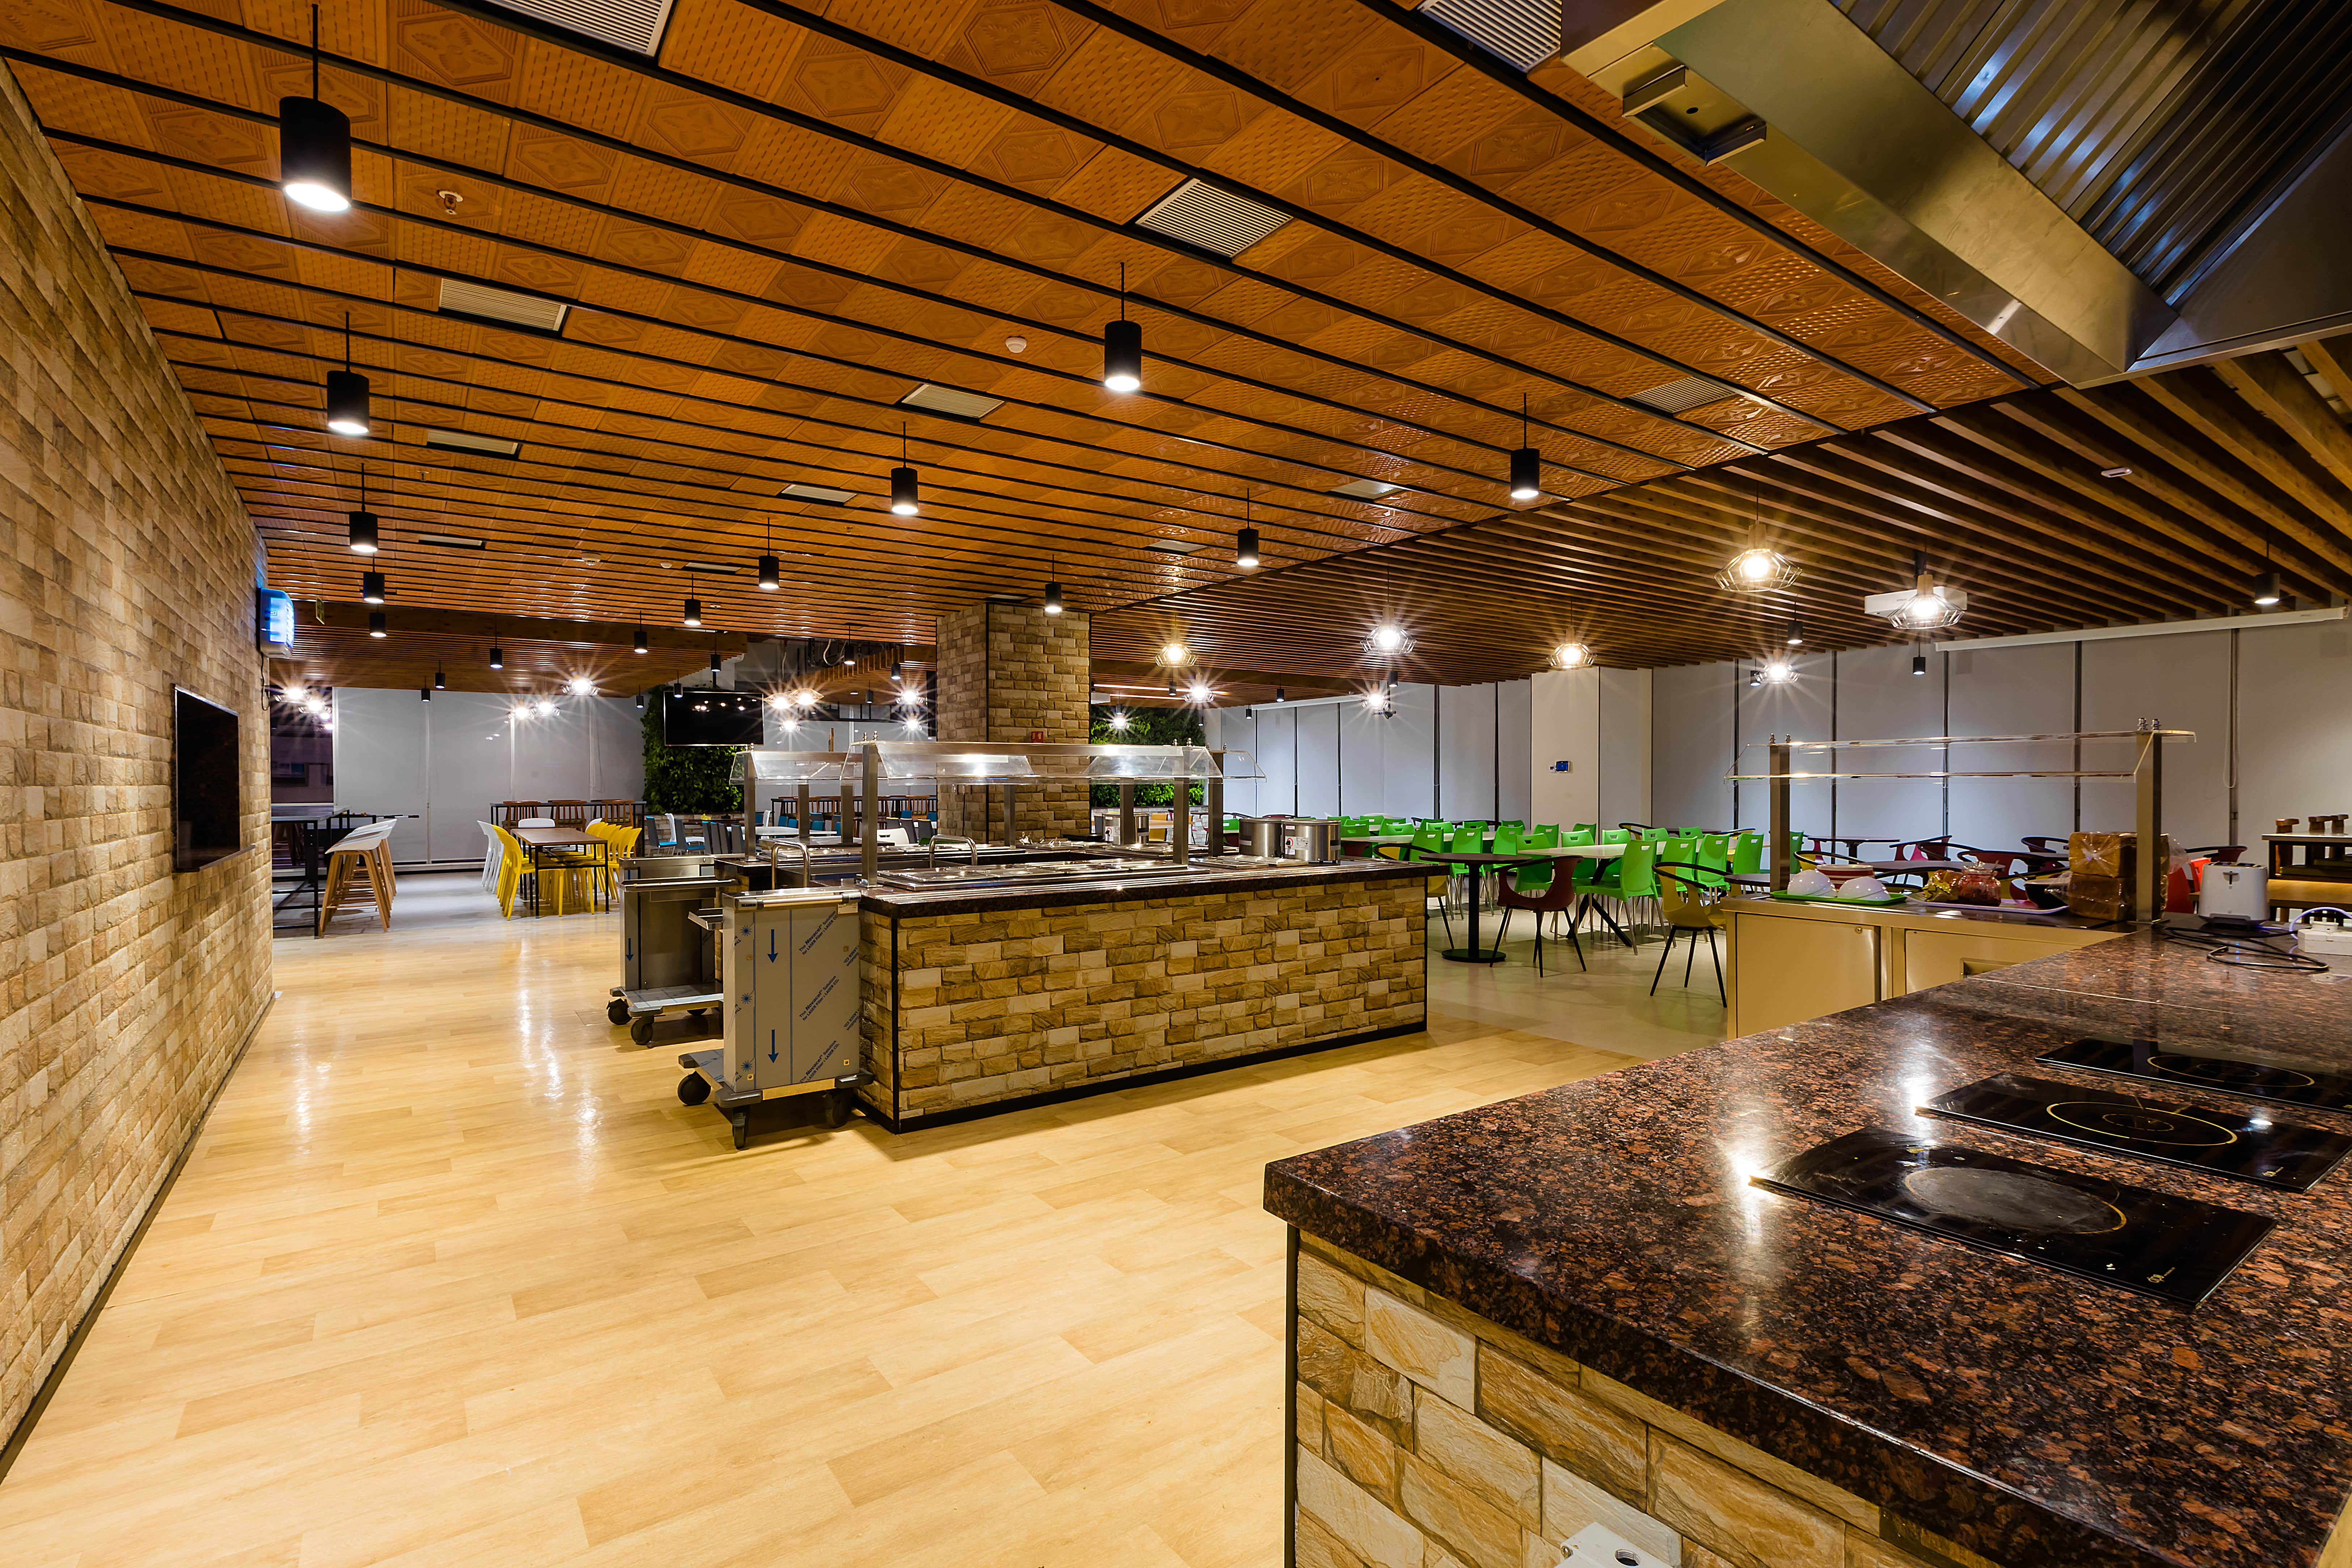 Workplace design and pantry details are meant to promote healthy eating choices